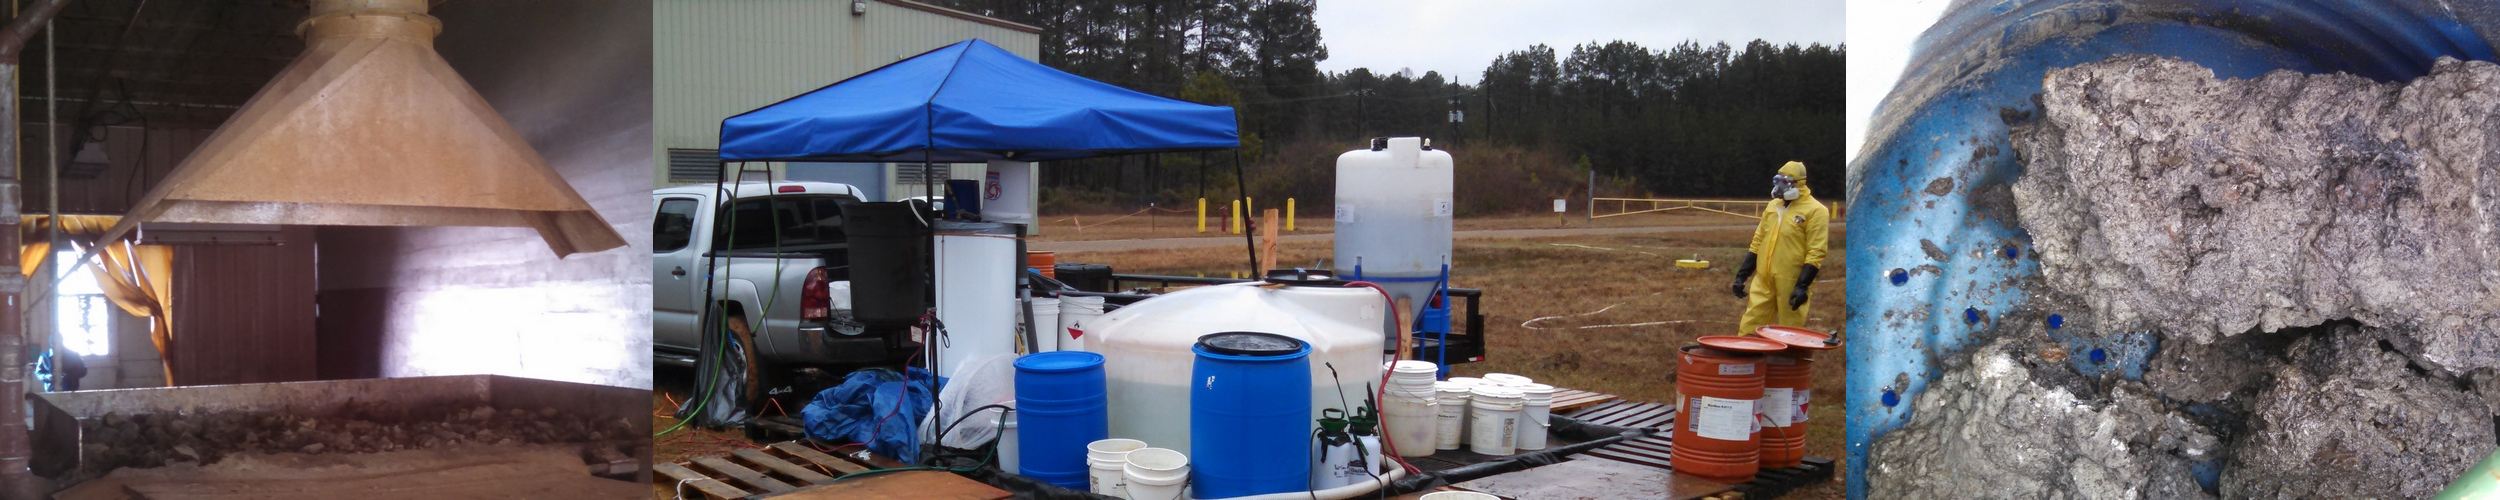 MuniRem Environmental munitions destruction and decontamination at Camp Minden, LA